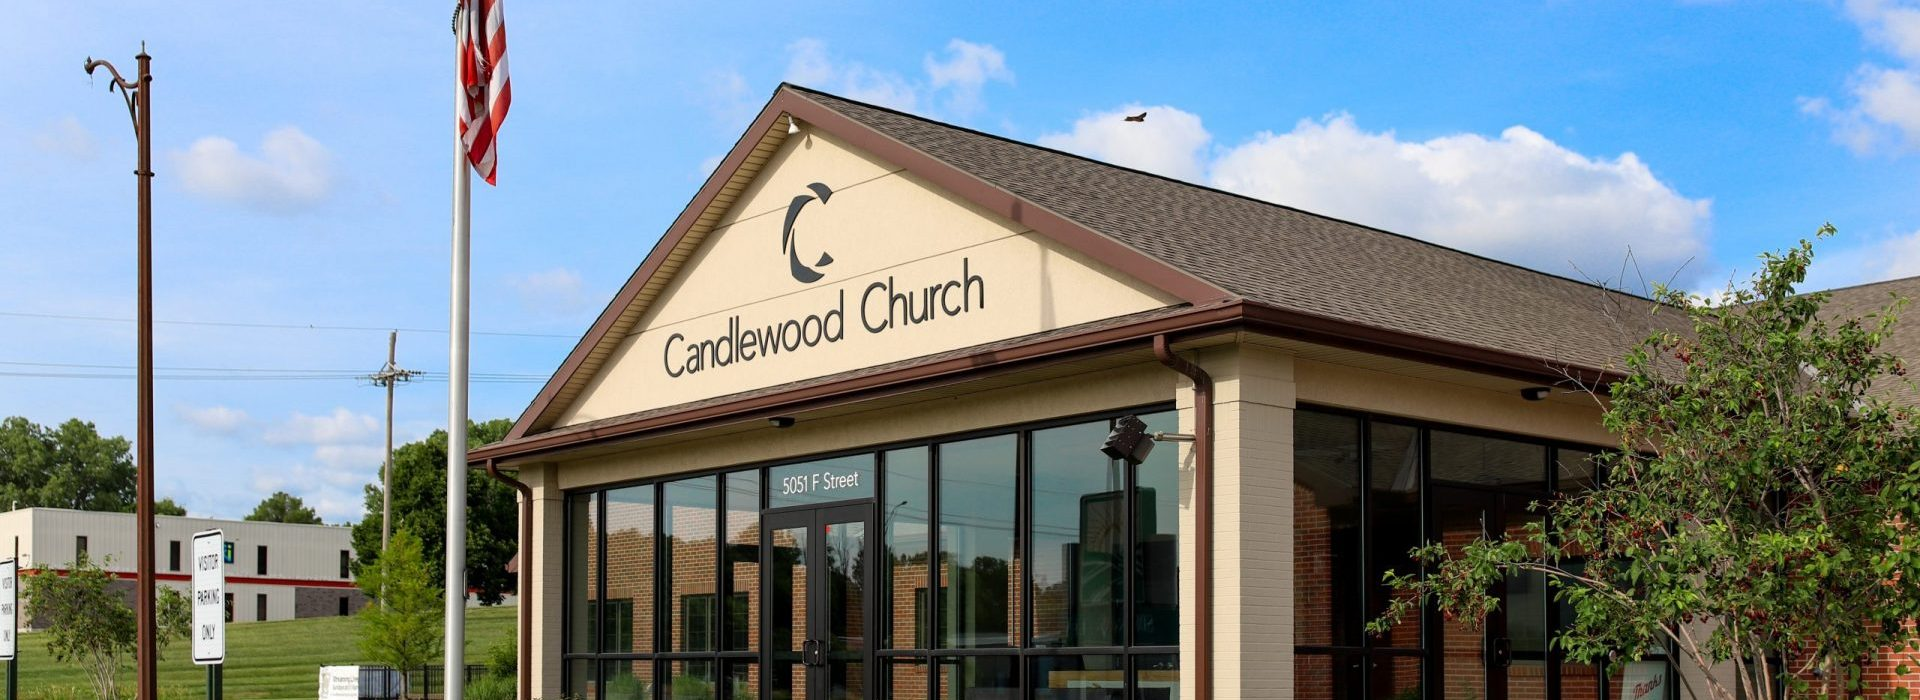 GCC candlewood church update